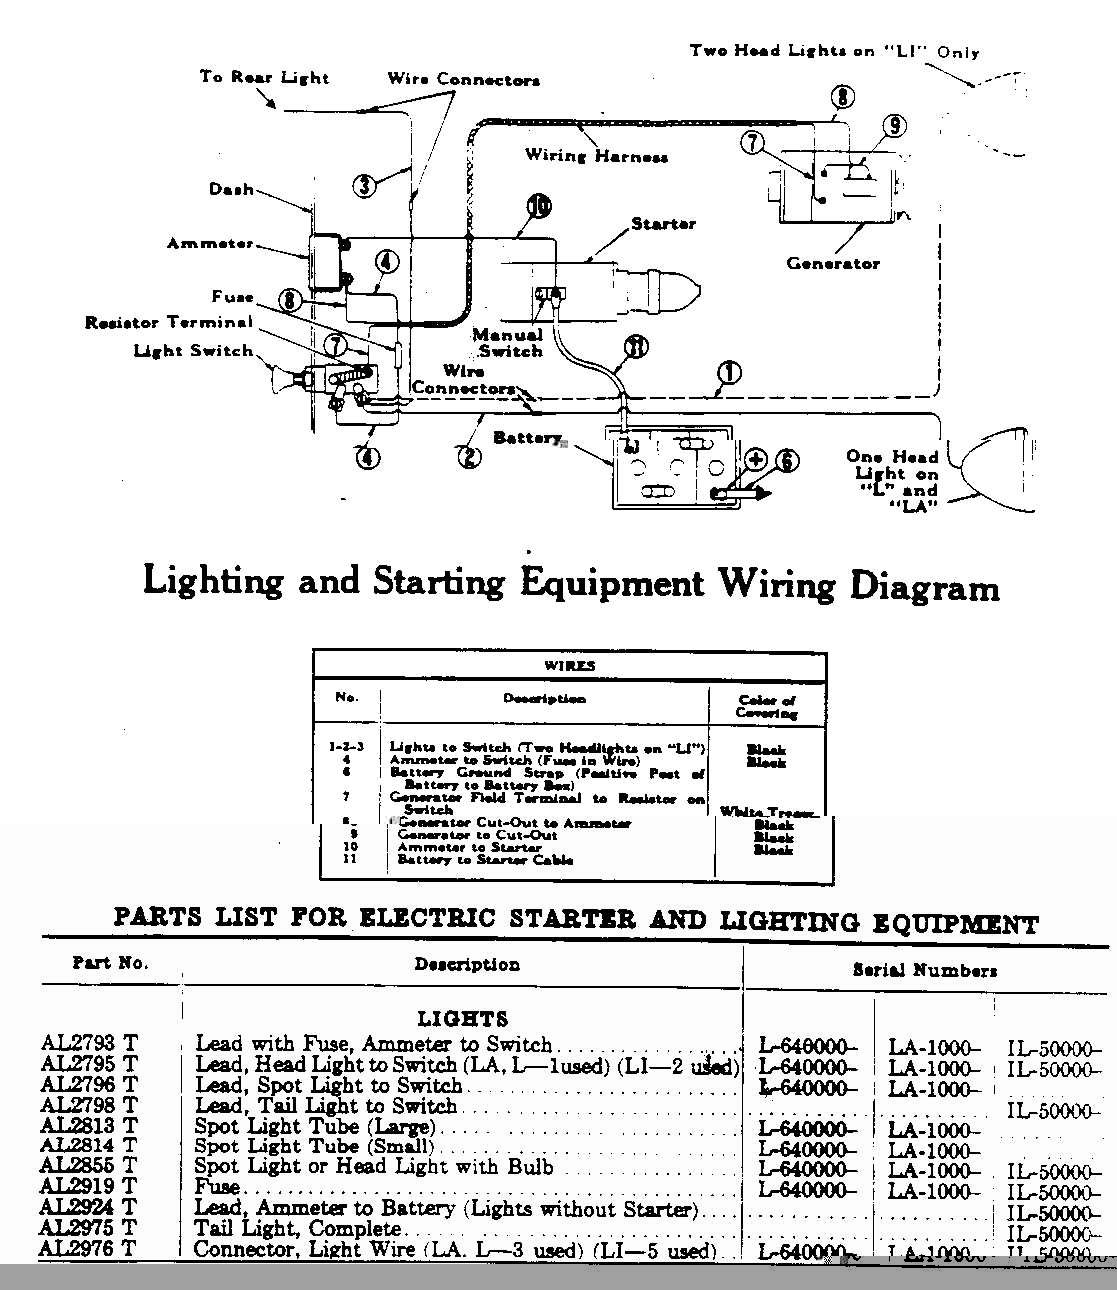 diagram] john deere 60 wiring diagram full version hd quality wiring diagram  - diagramduck.rocknroad.it  diagram database - rocknroad.it